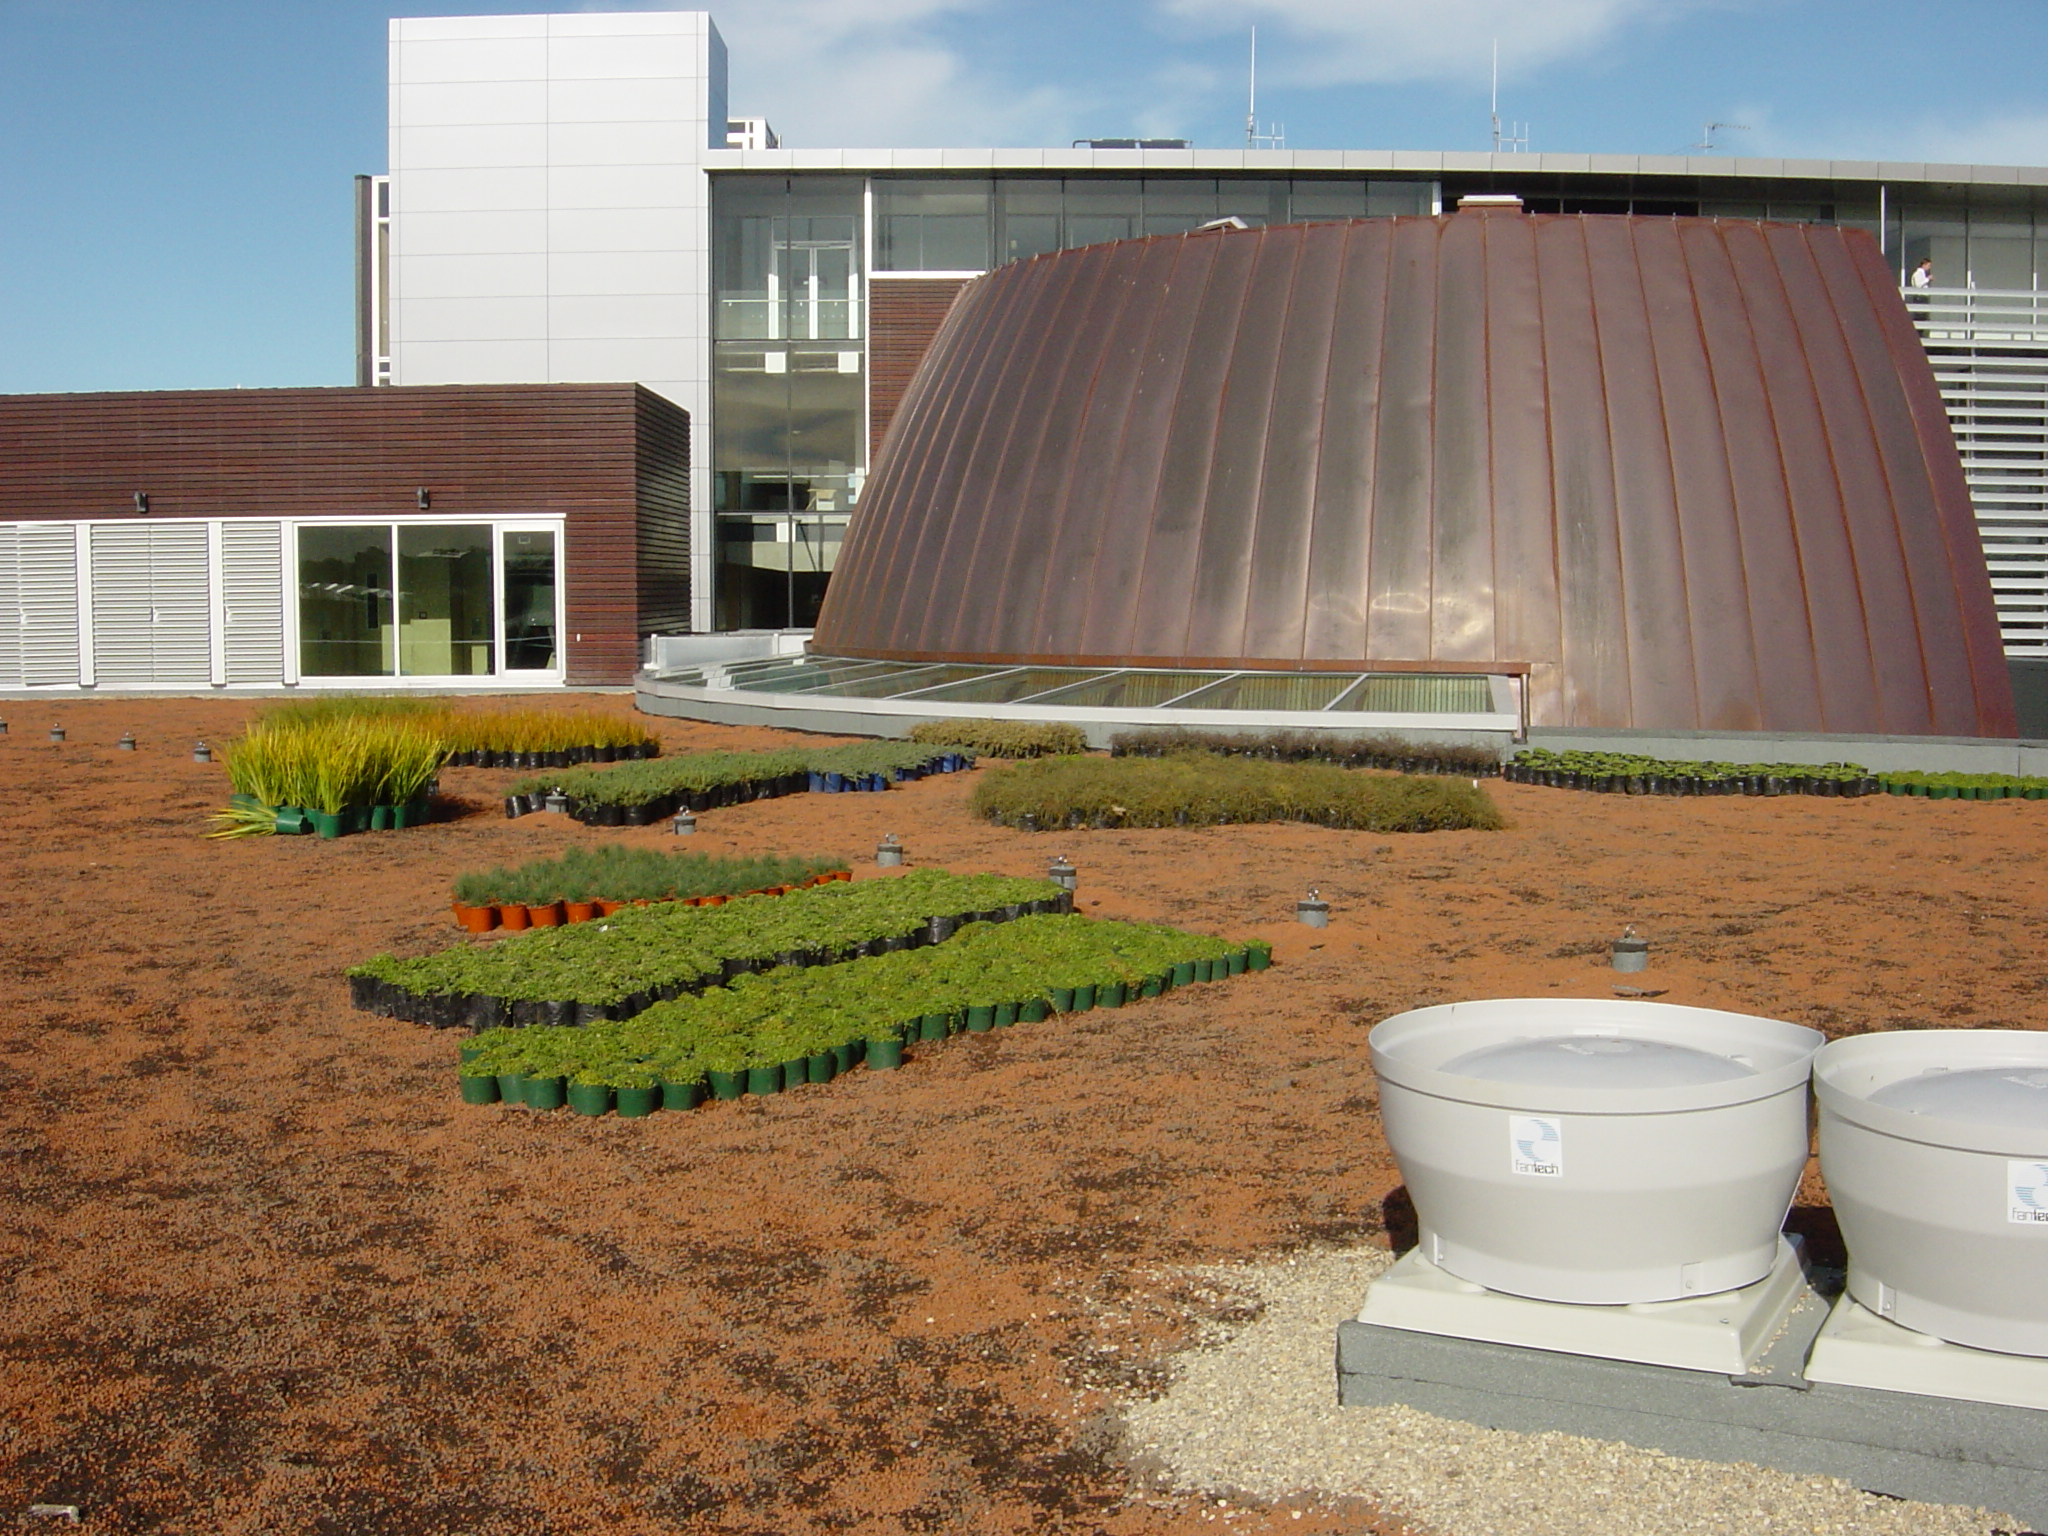 Green roof plants ready for planting